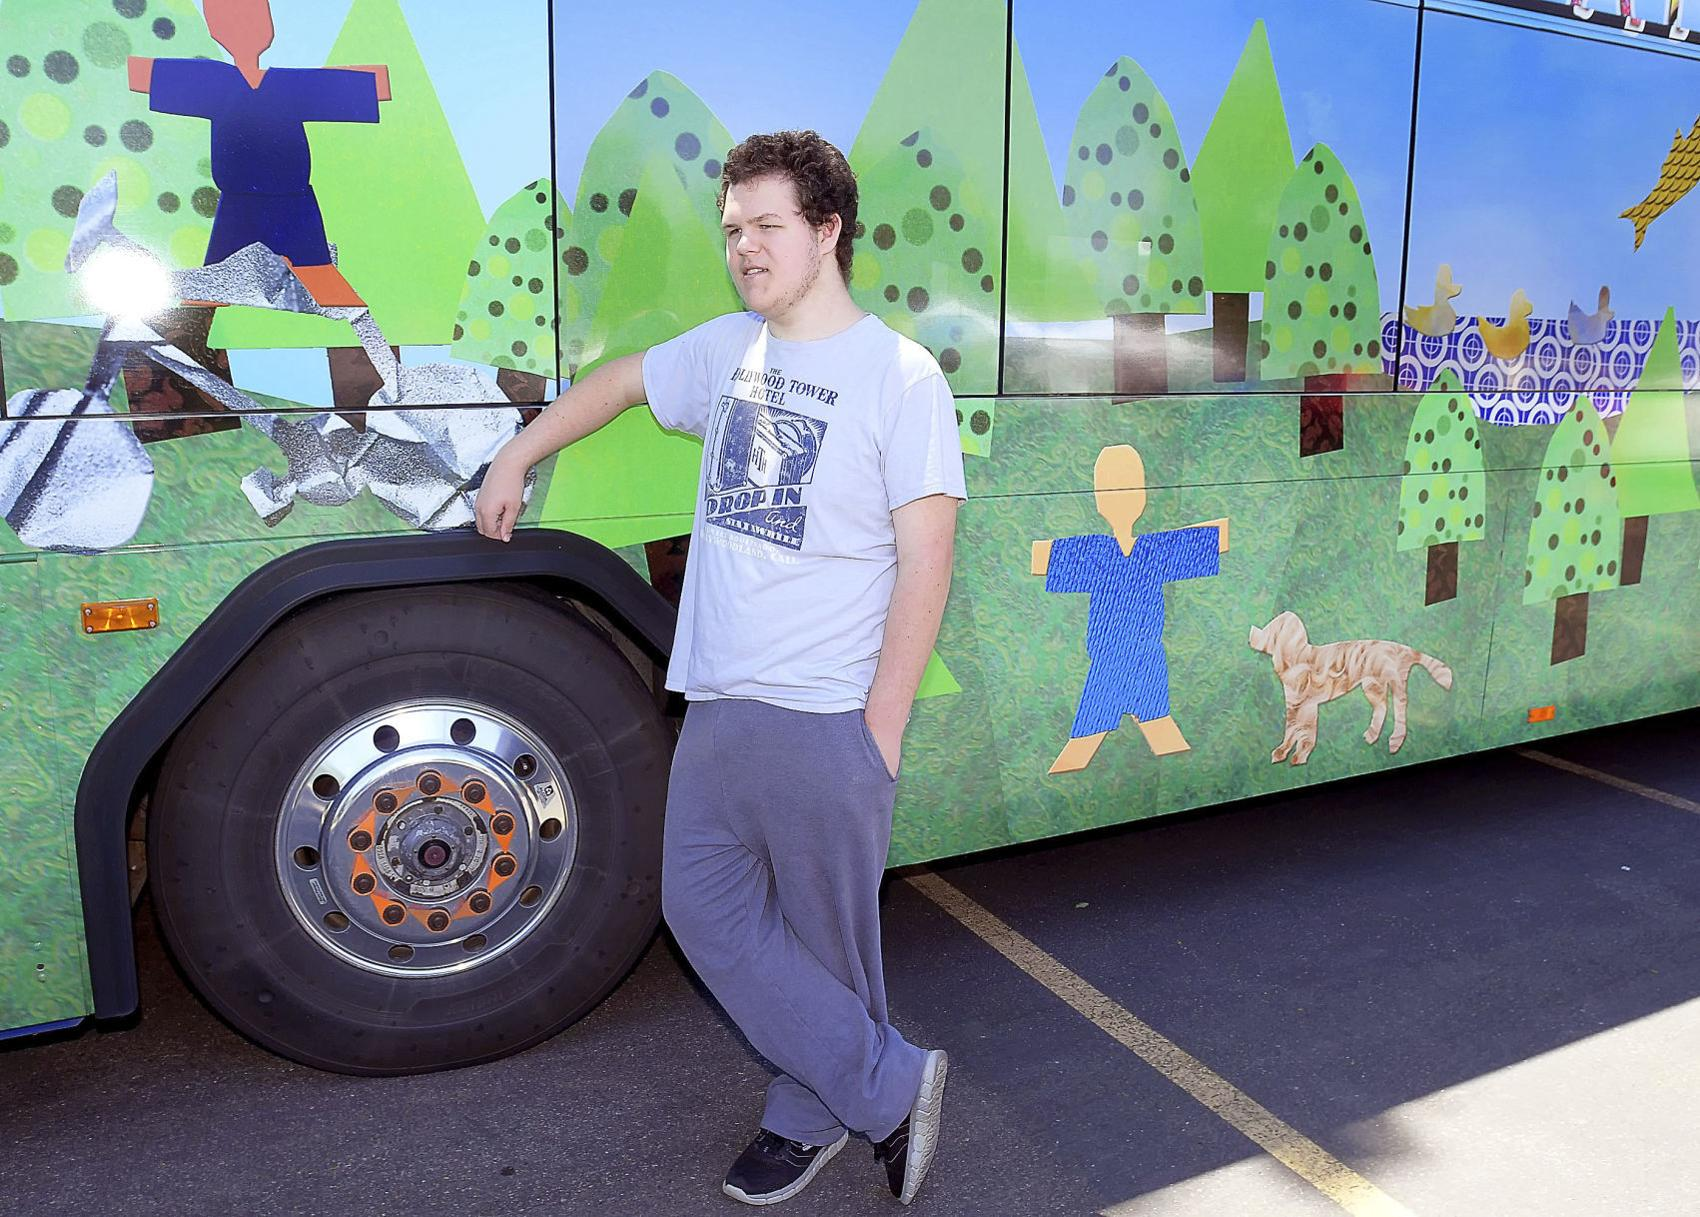 Art in Transit program unveils new bus art at Summerfest